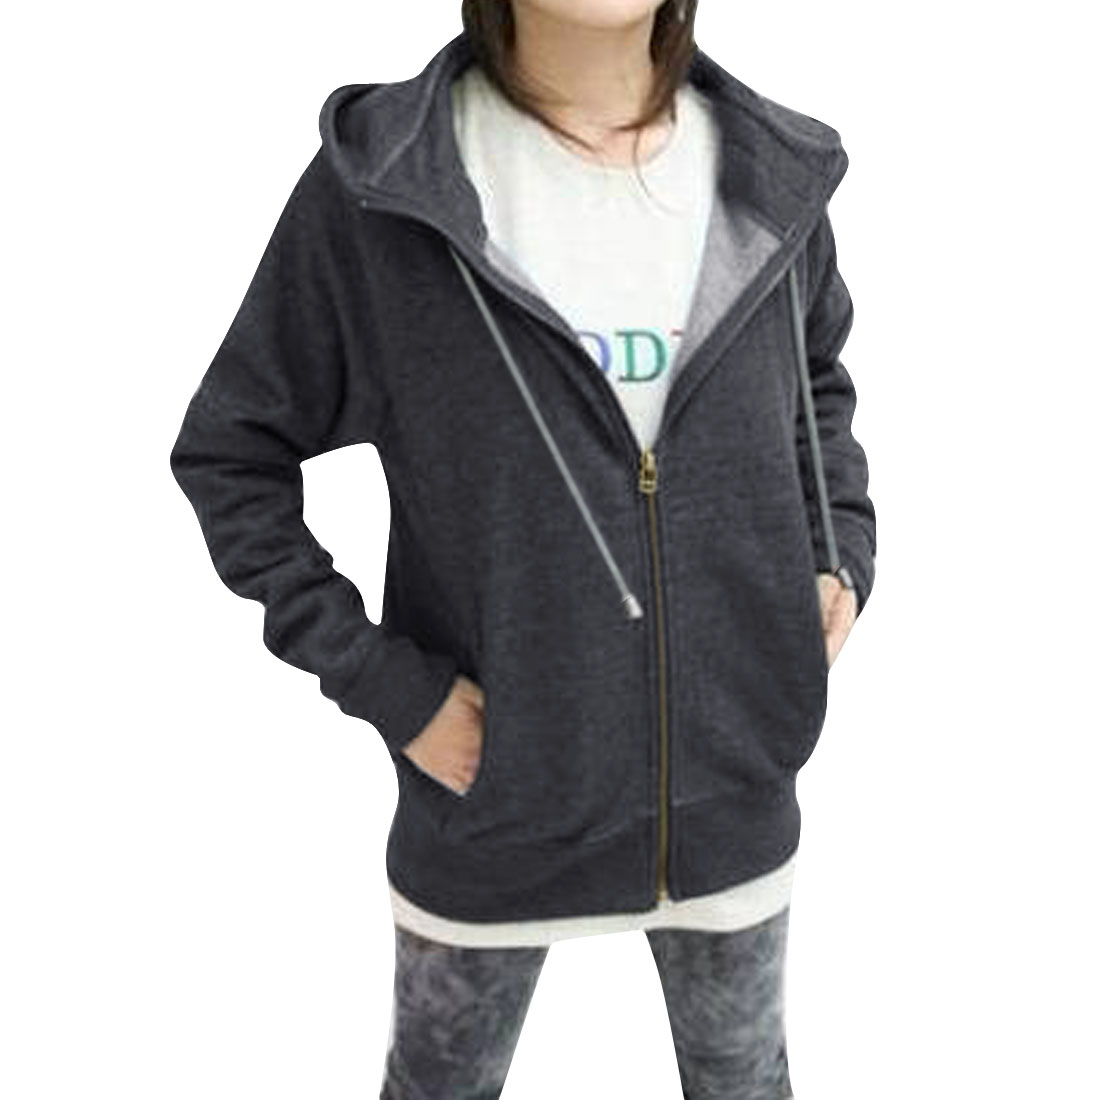 Pure Dark Gray Full Zip-Up Closure Warm Hooded Jacket for Lady S